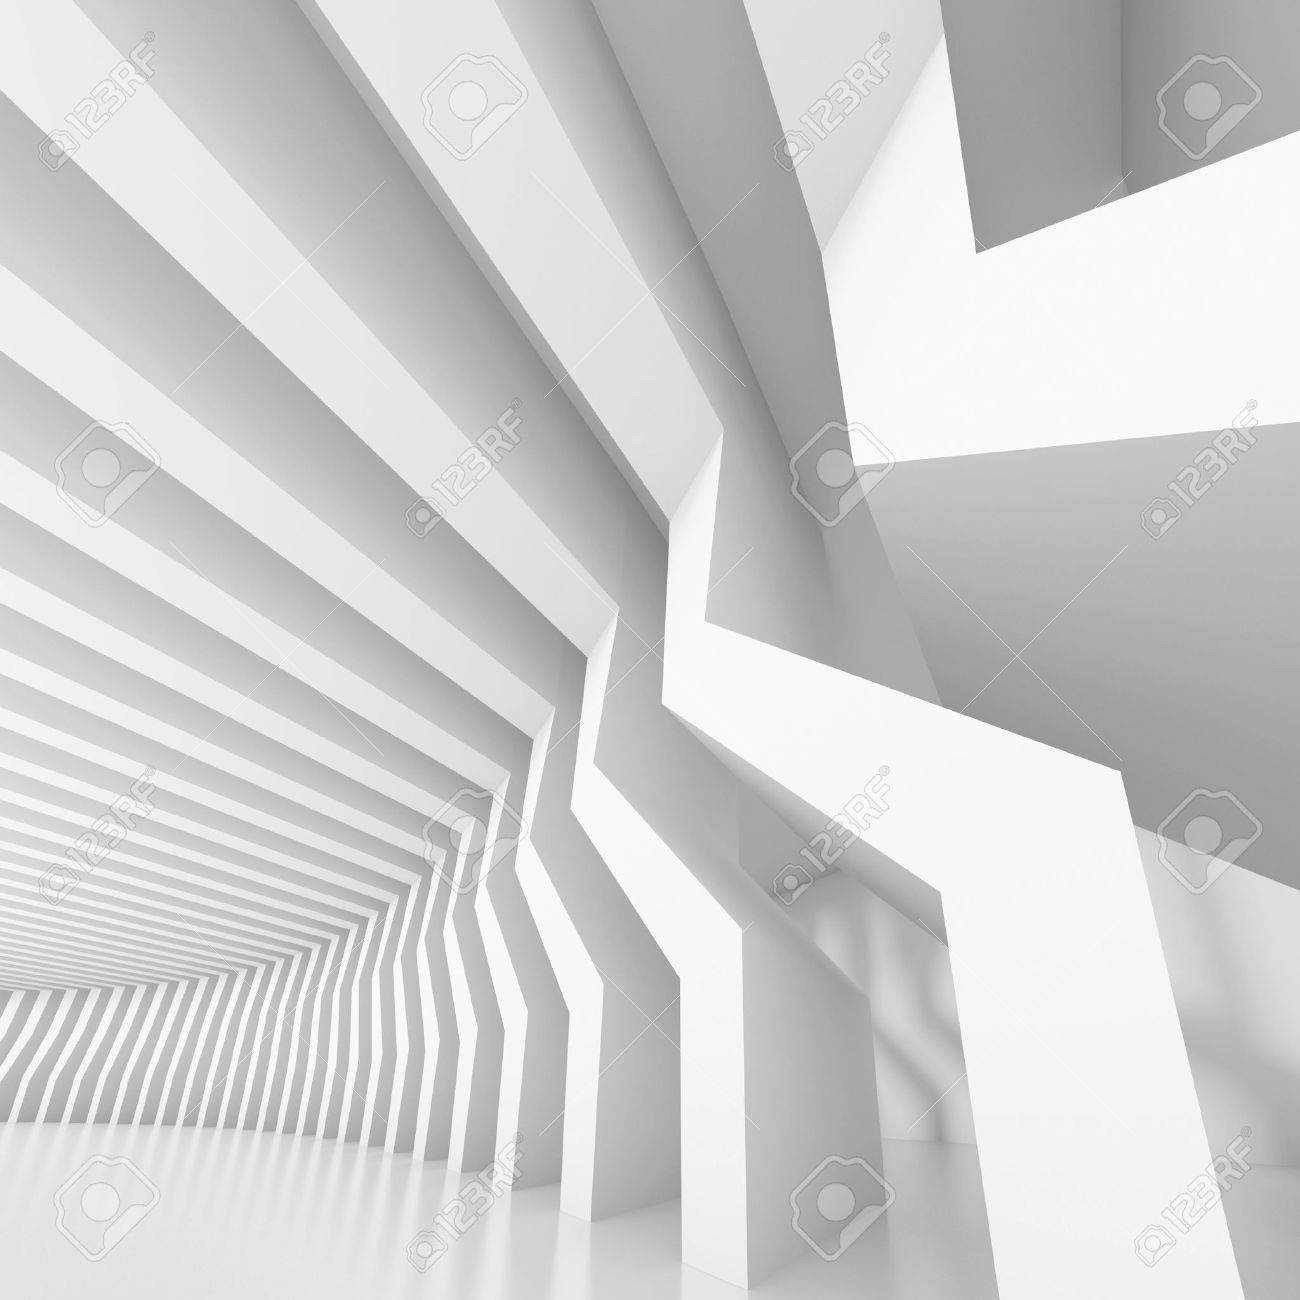 Abstract Architecture Background Stock Photo - 13652420